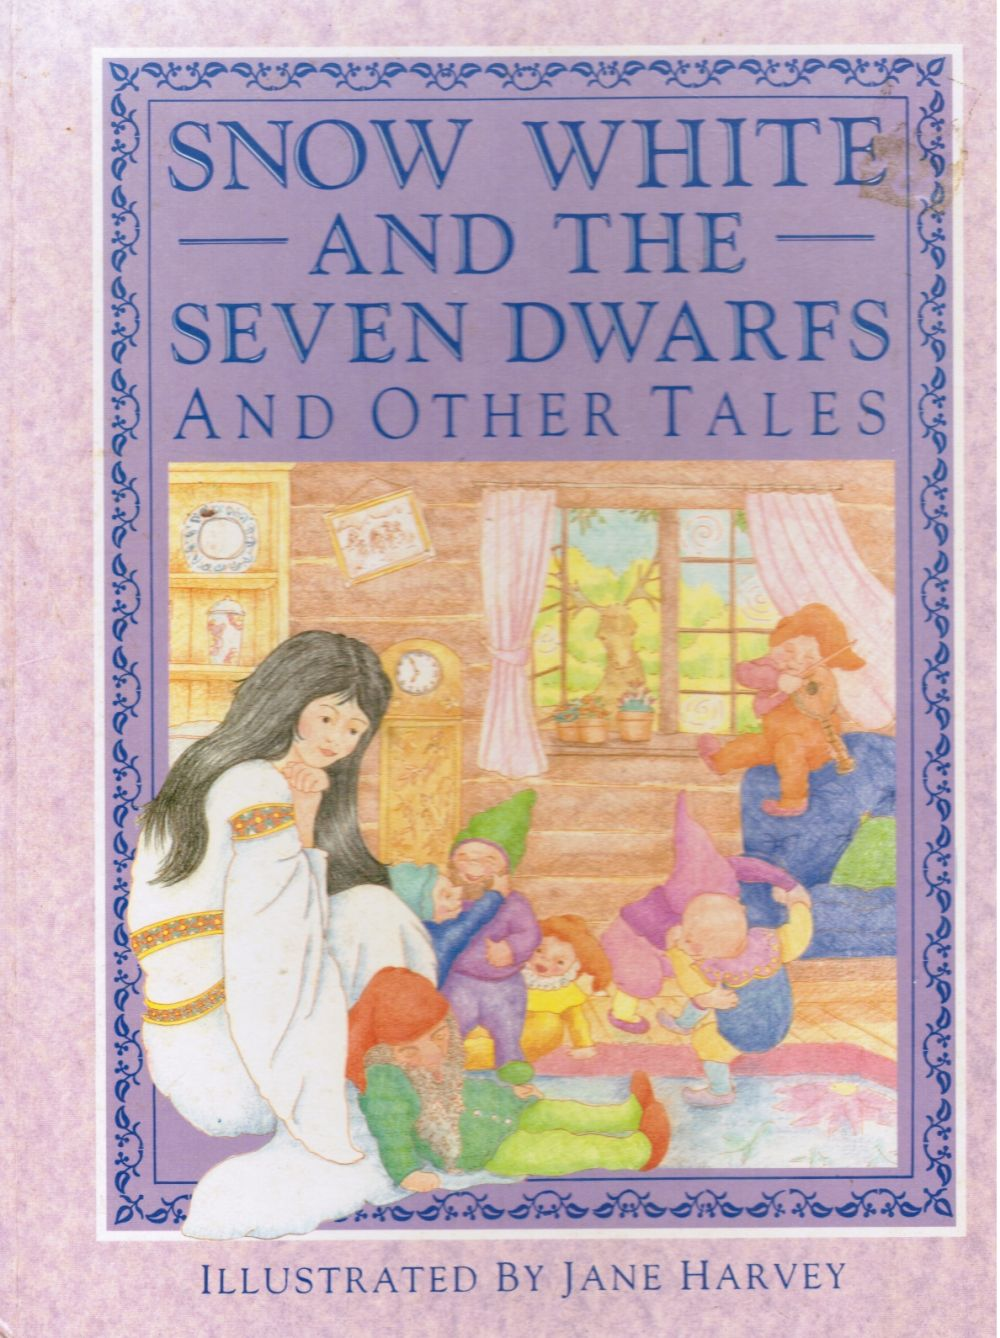 CARTER, GERALDINE - Snow White and the Seven Dwarfs and Other Tales